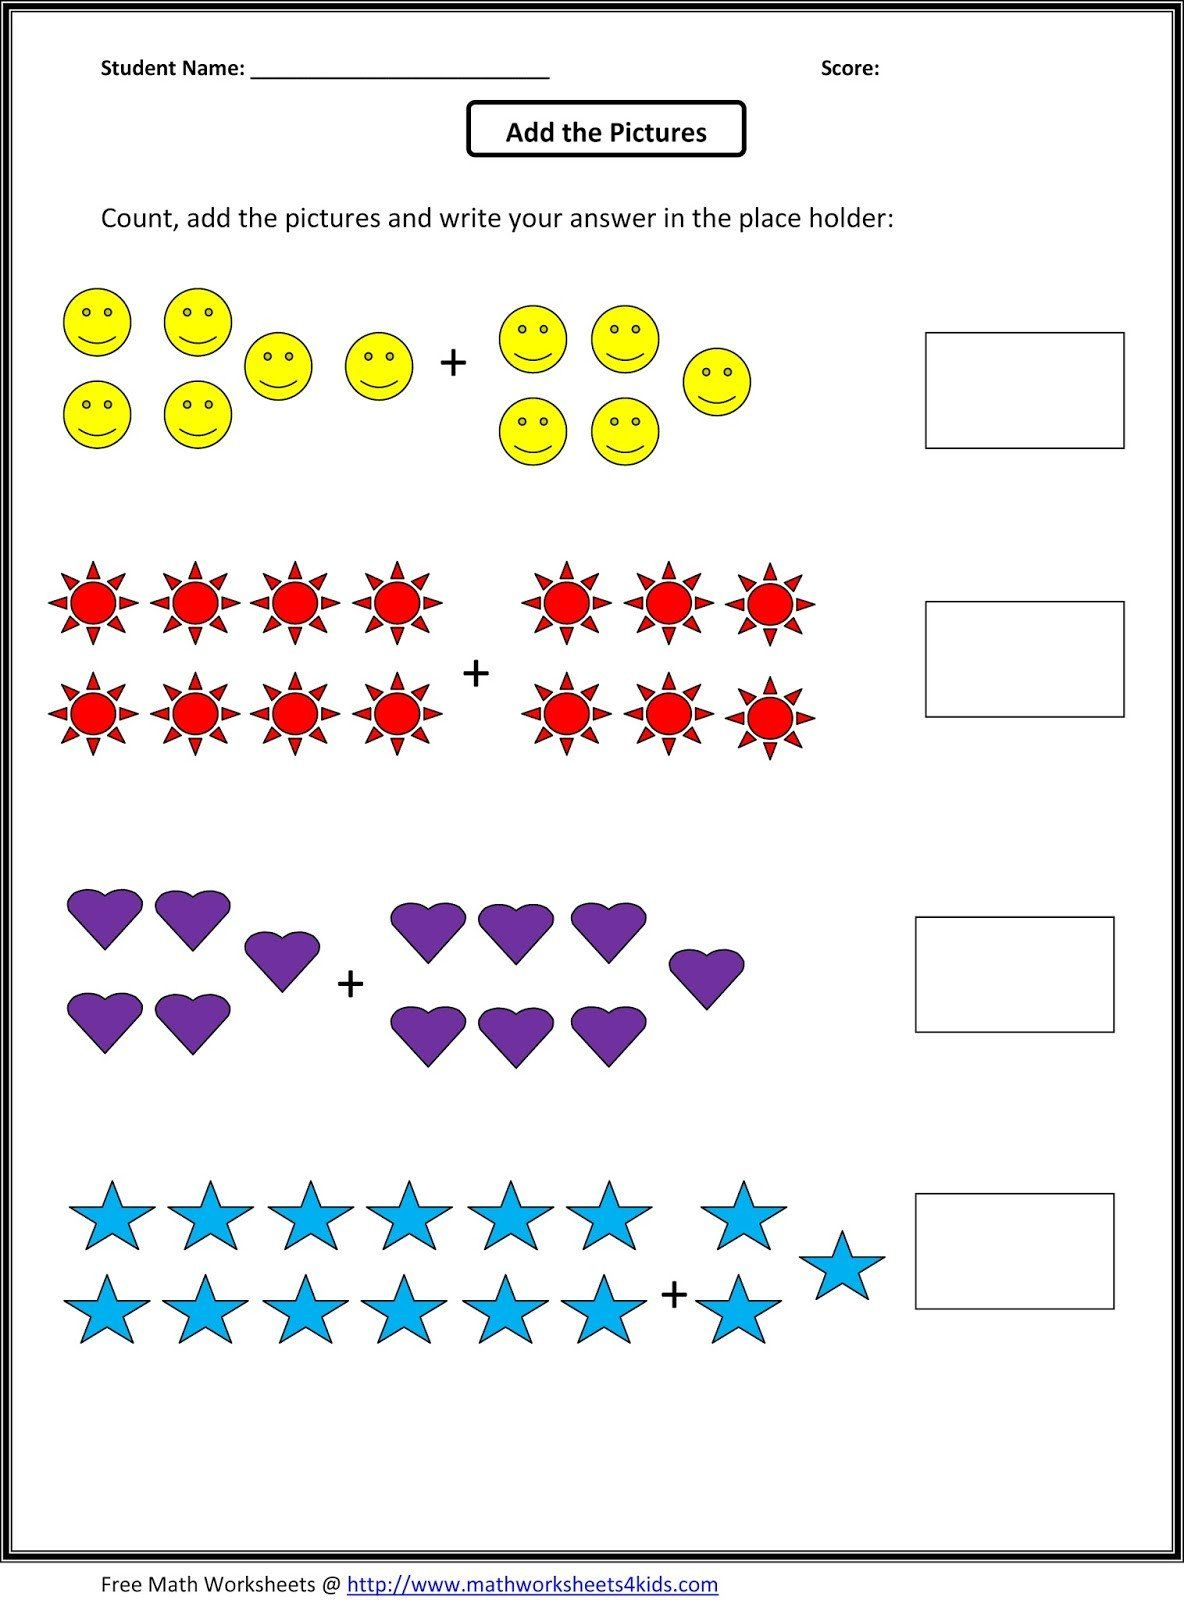 Functional Math Worksheets Special Education Special Education Math Worksheets I In 2020 Free Printable Math Worksheets 1st Grade Math Worksheets Fun Math Worksheets